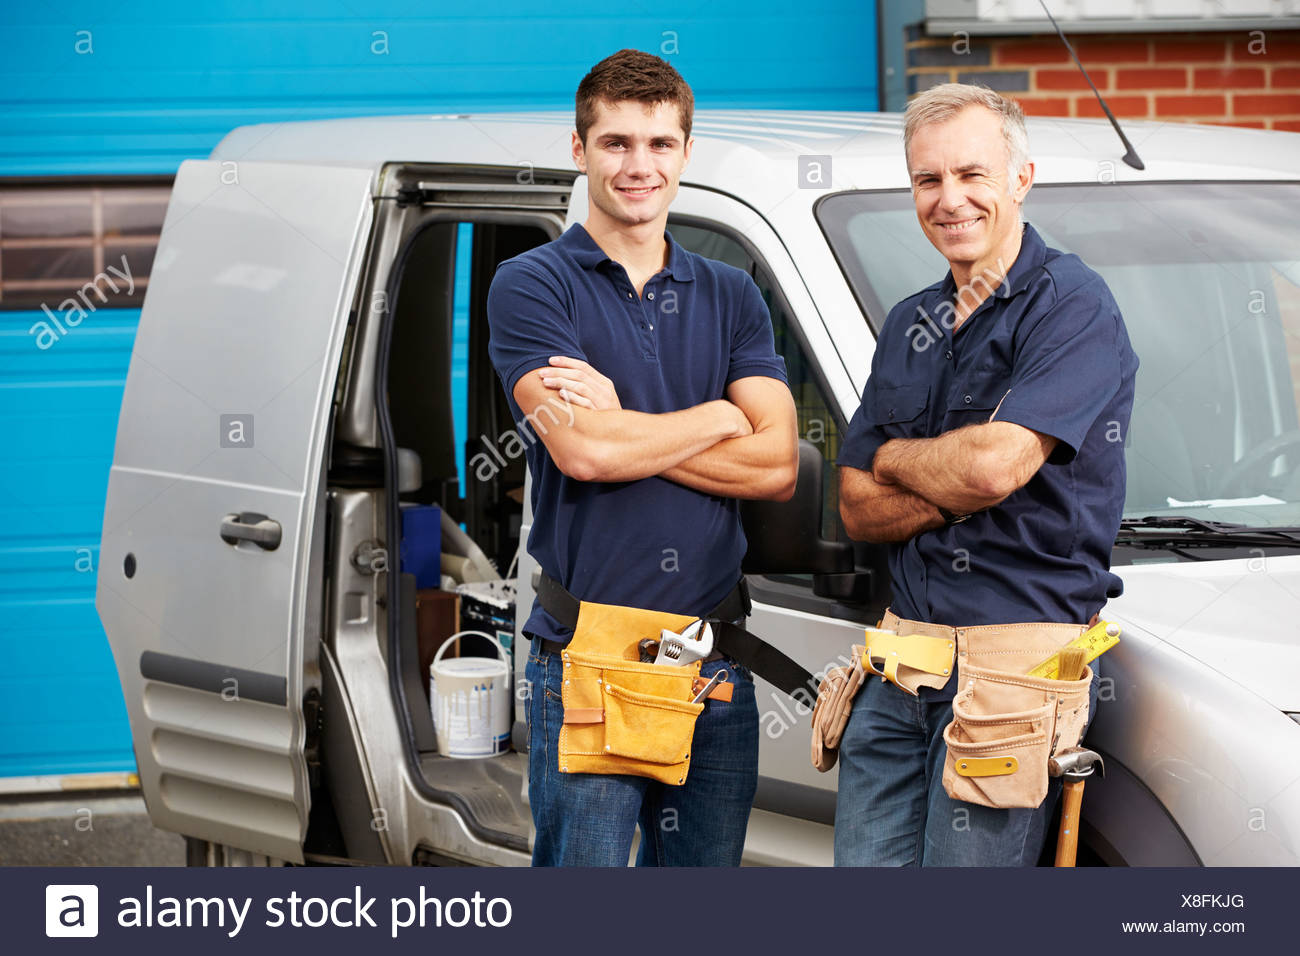 Workers In Family Business Standing Next To Van - Stock Image